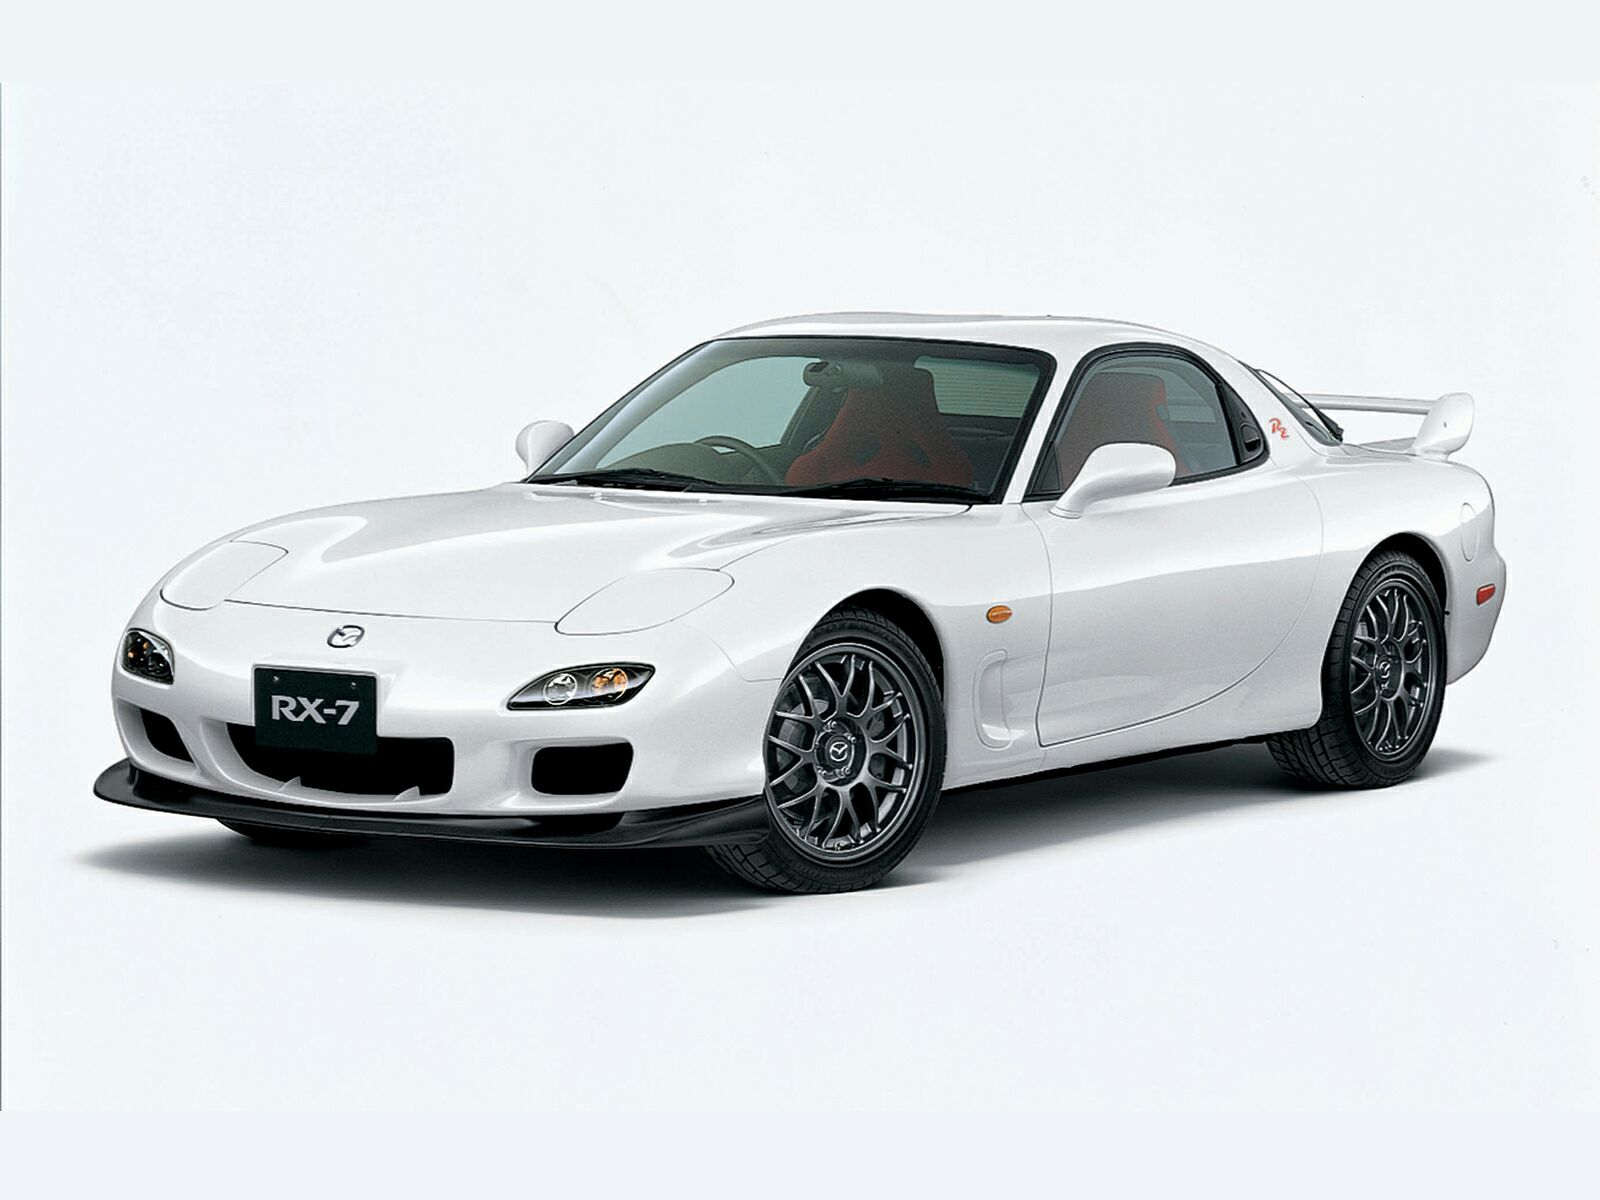 Mazda Coupe 6 >> 3DTuning of Mazda RX-7 Spirit R Type-A Coupe 2002 3DTuning.com - unique on-line car configurator ...